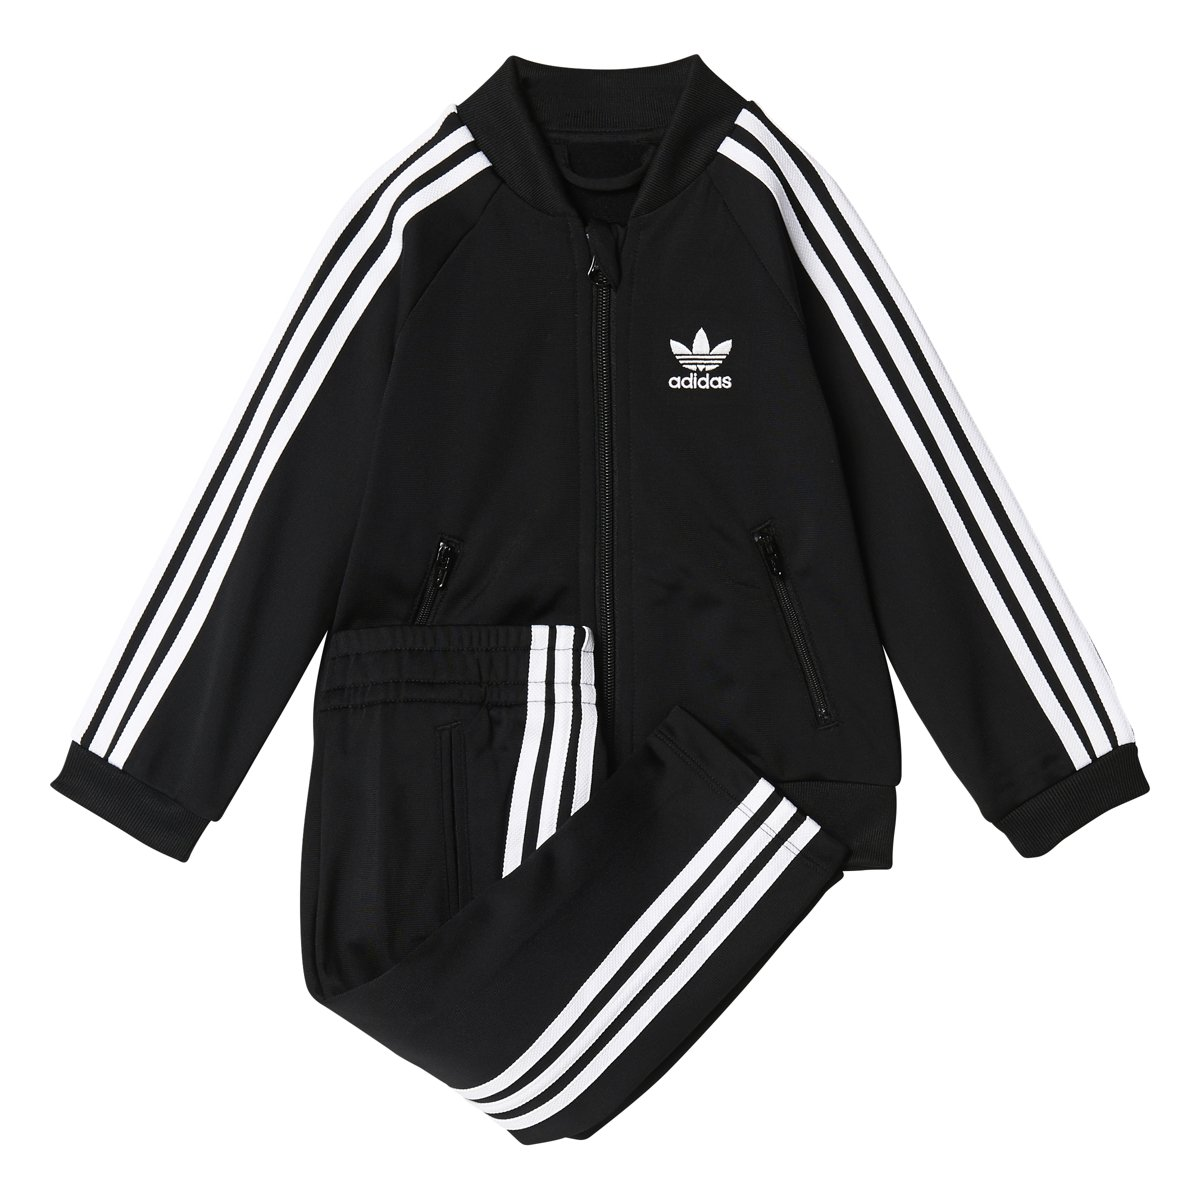 adidas Originals Sets Infant Superstar Track Suit, Black/White, 3T